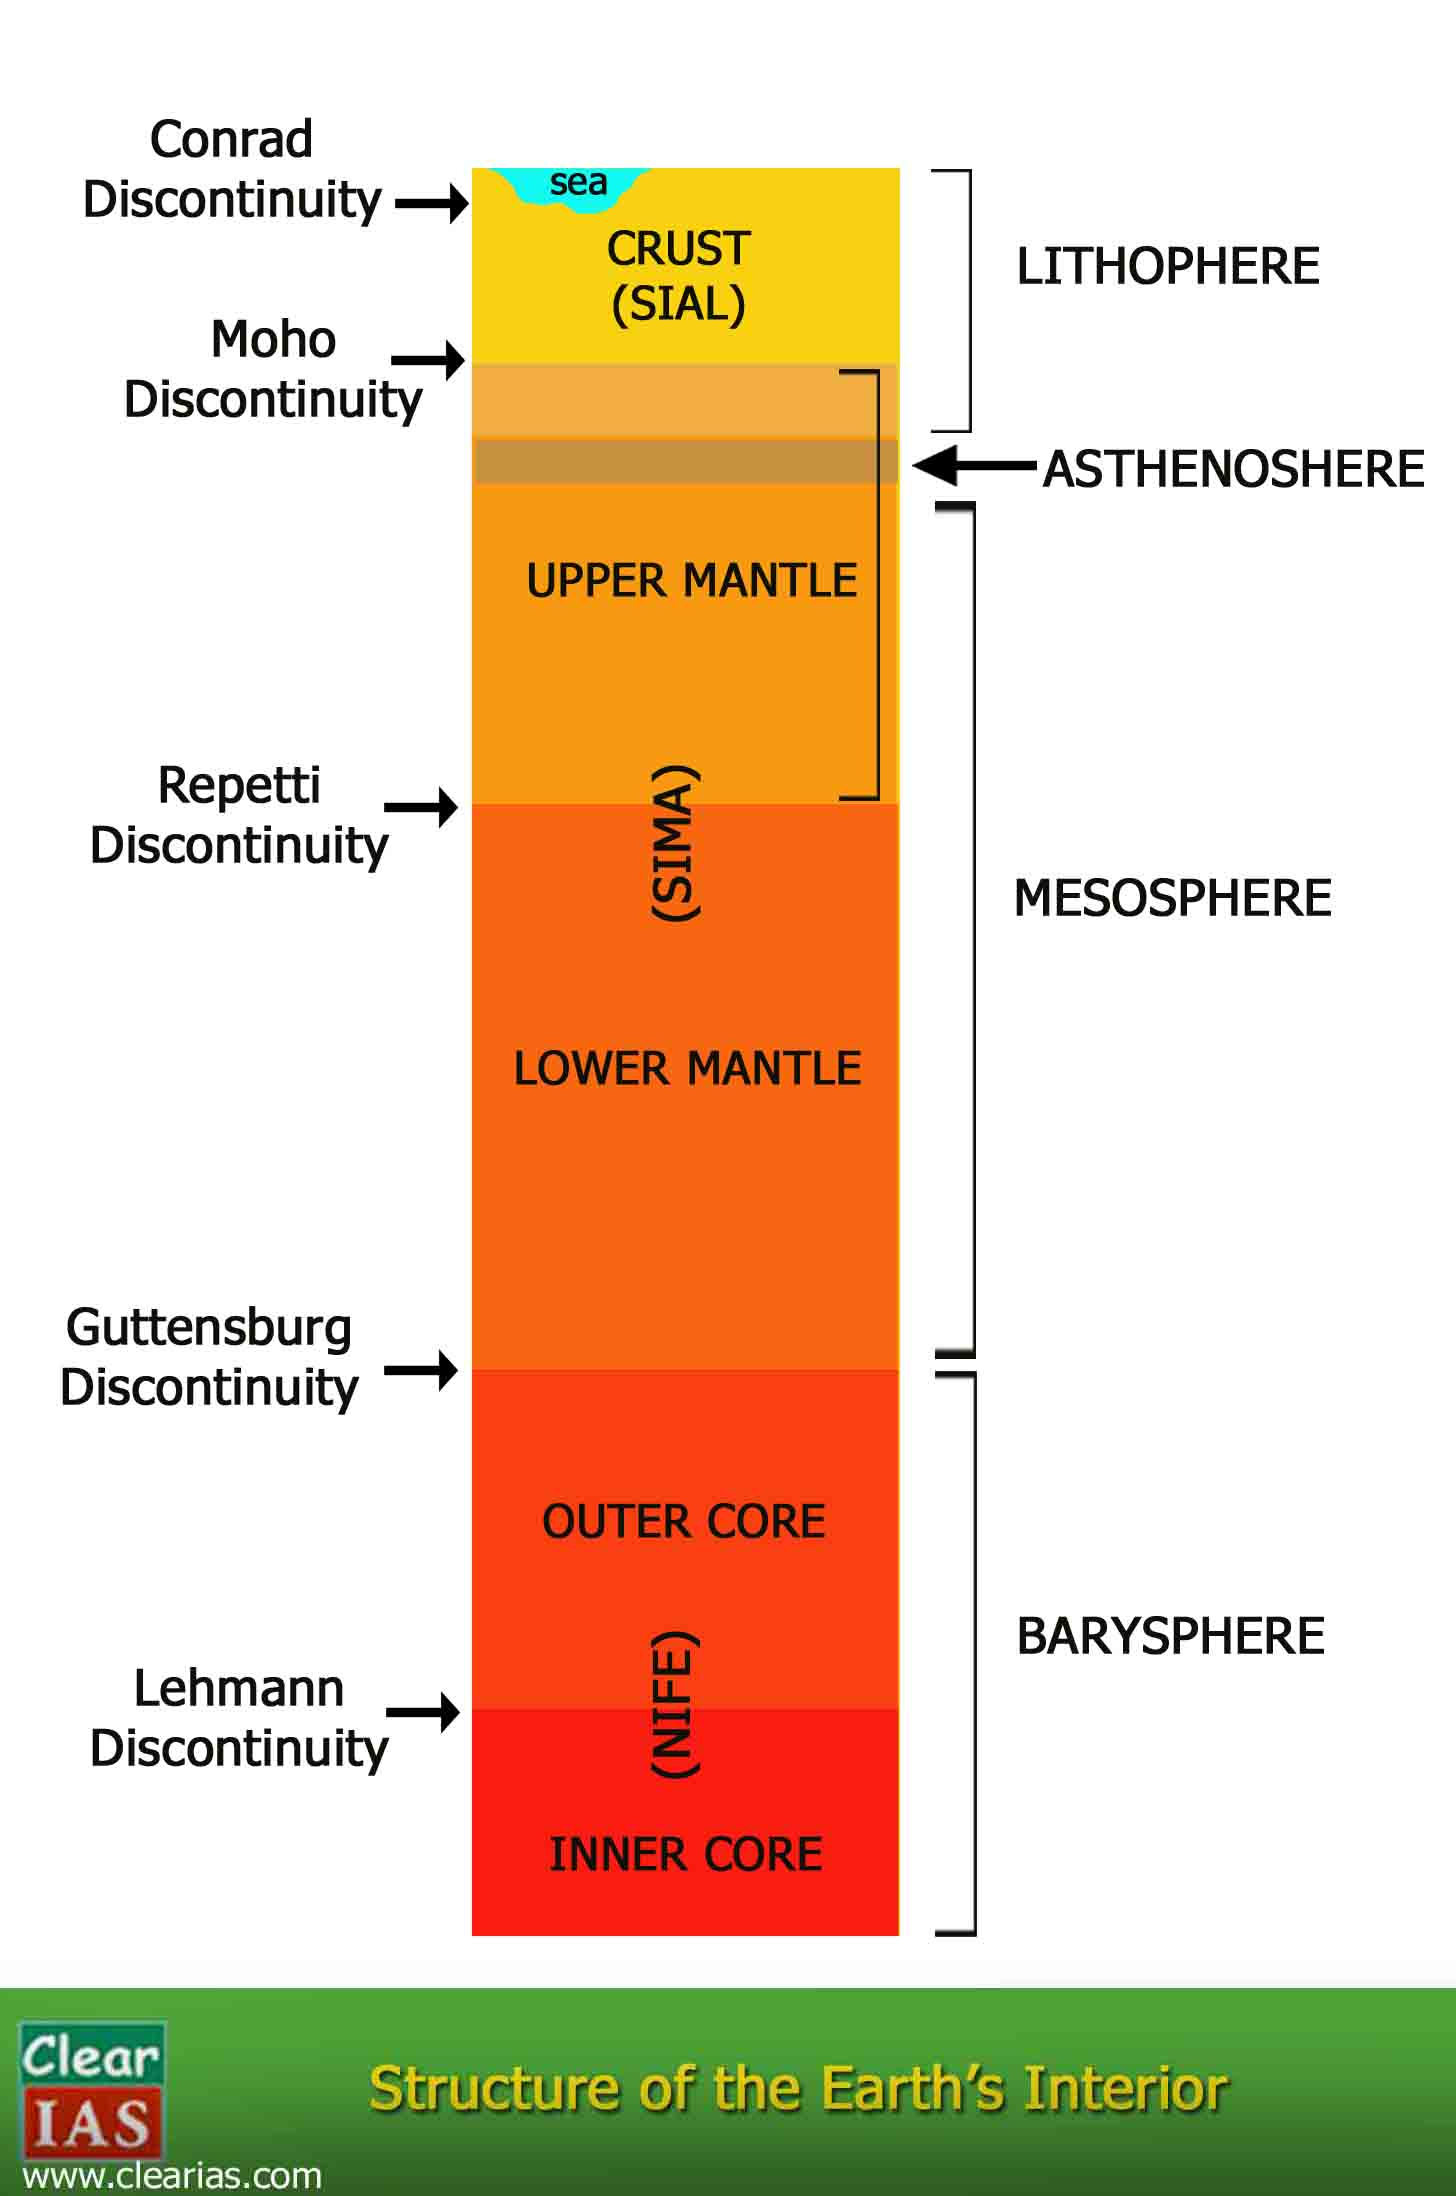 Interior of the Earth: Crust, Mantle and Core